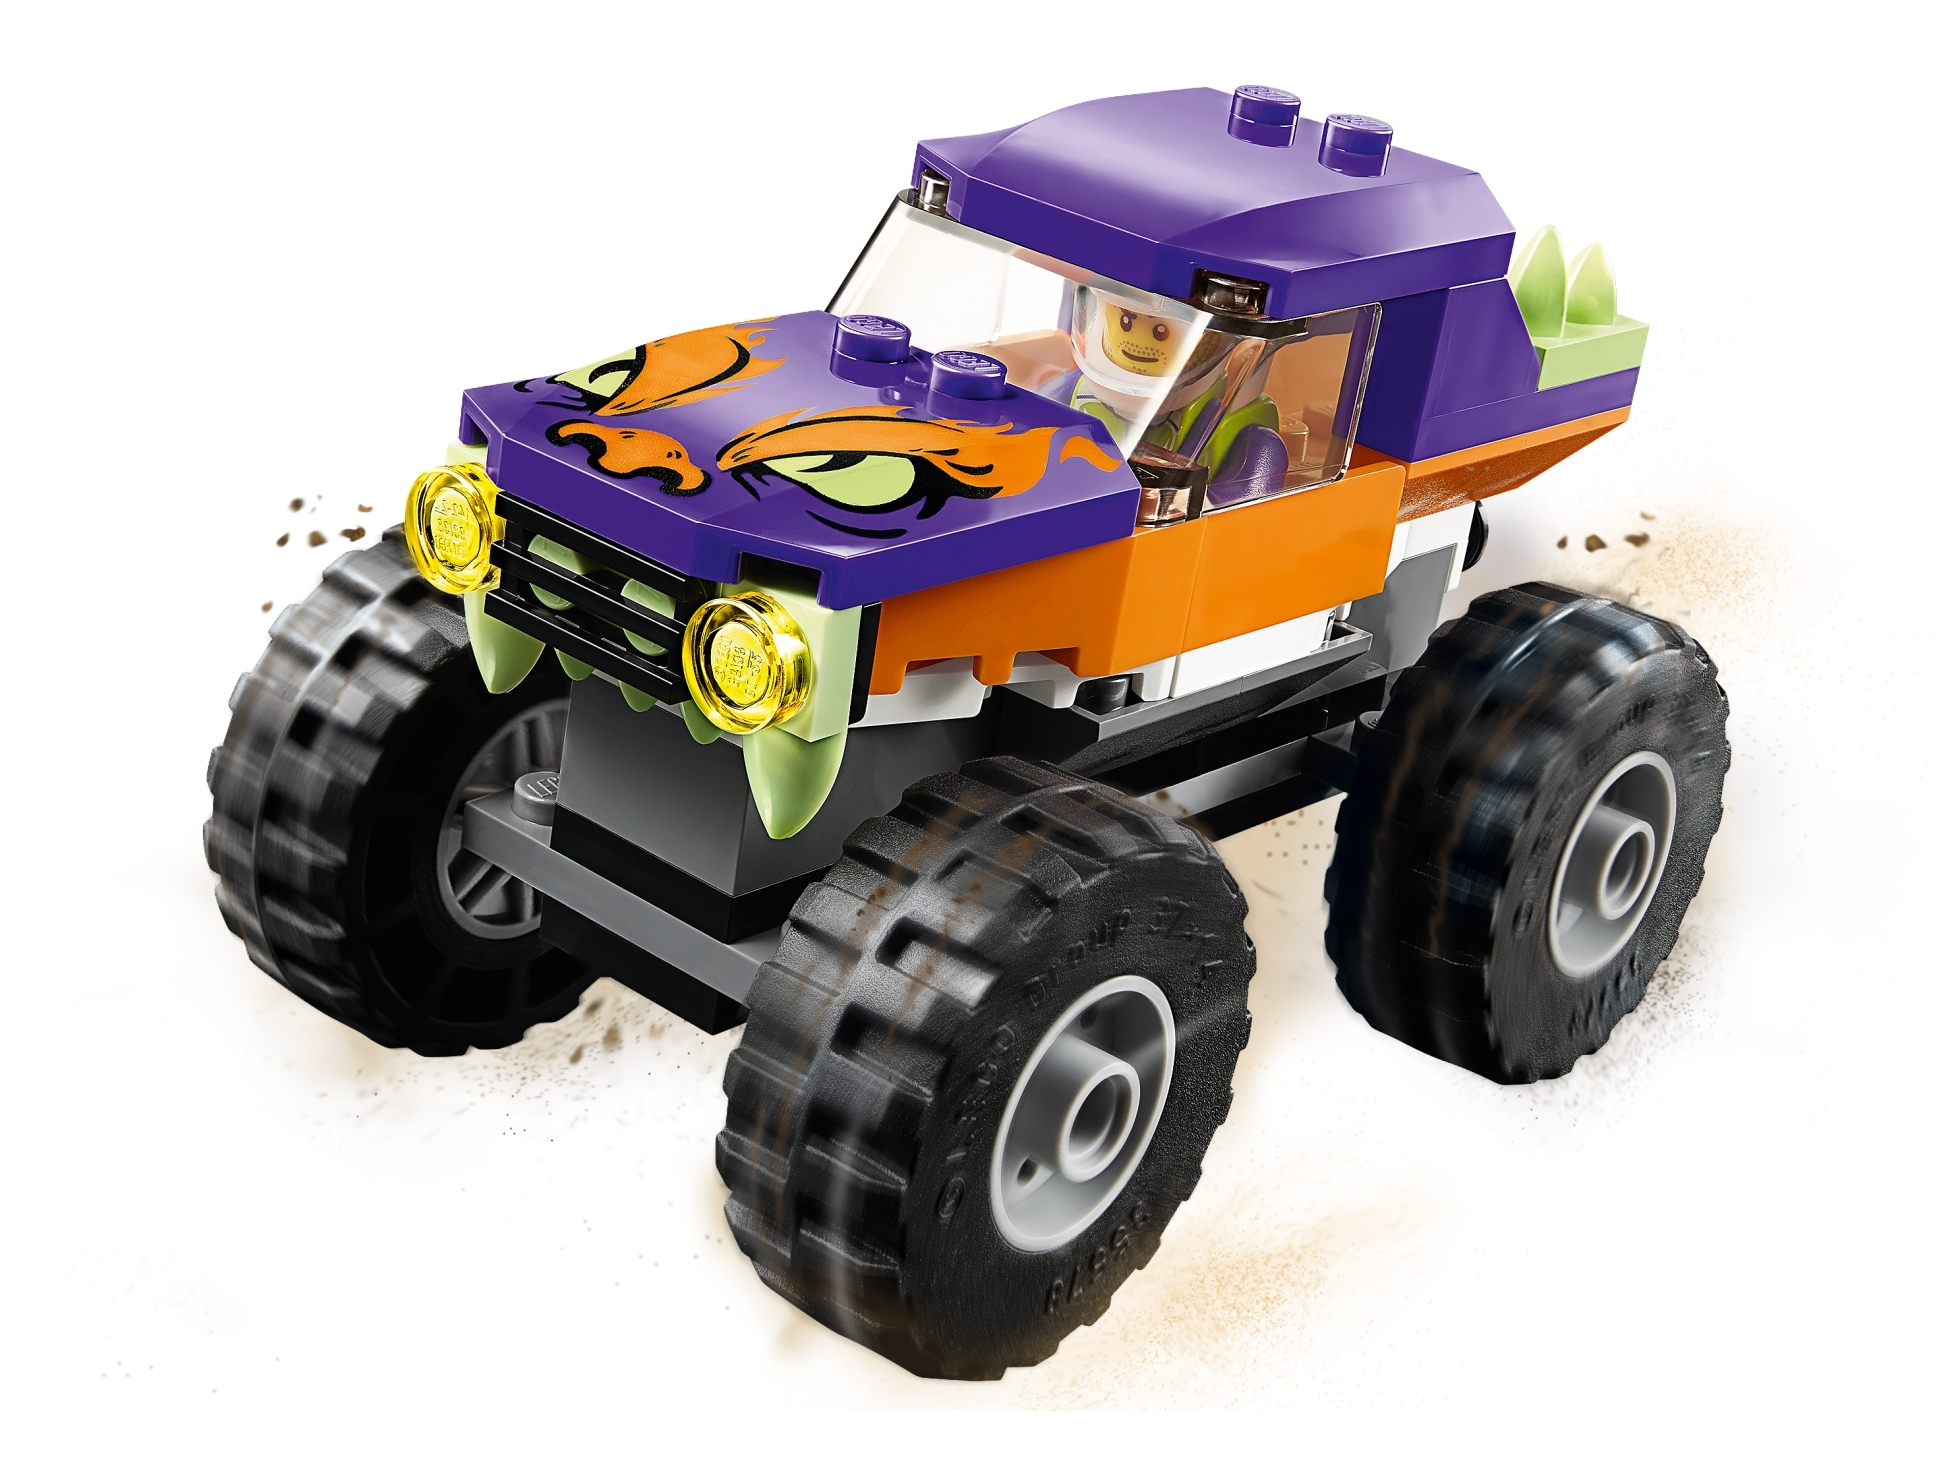 Monster Truck 60251 City Buy Online At The Official Lego Shop Us